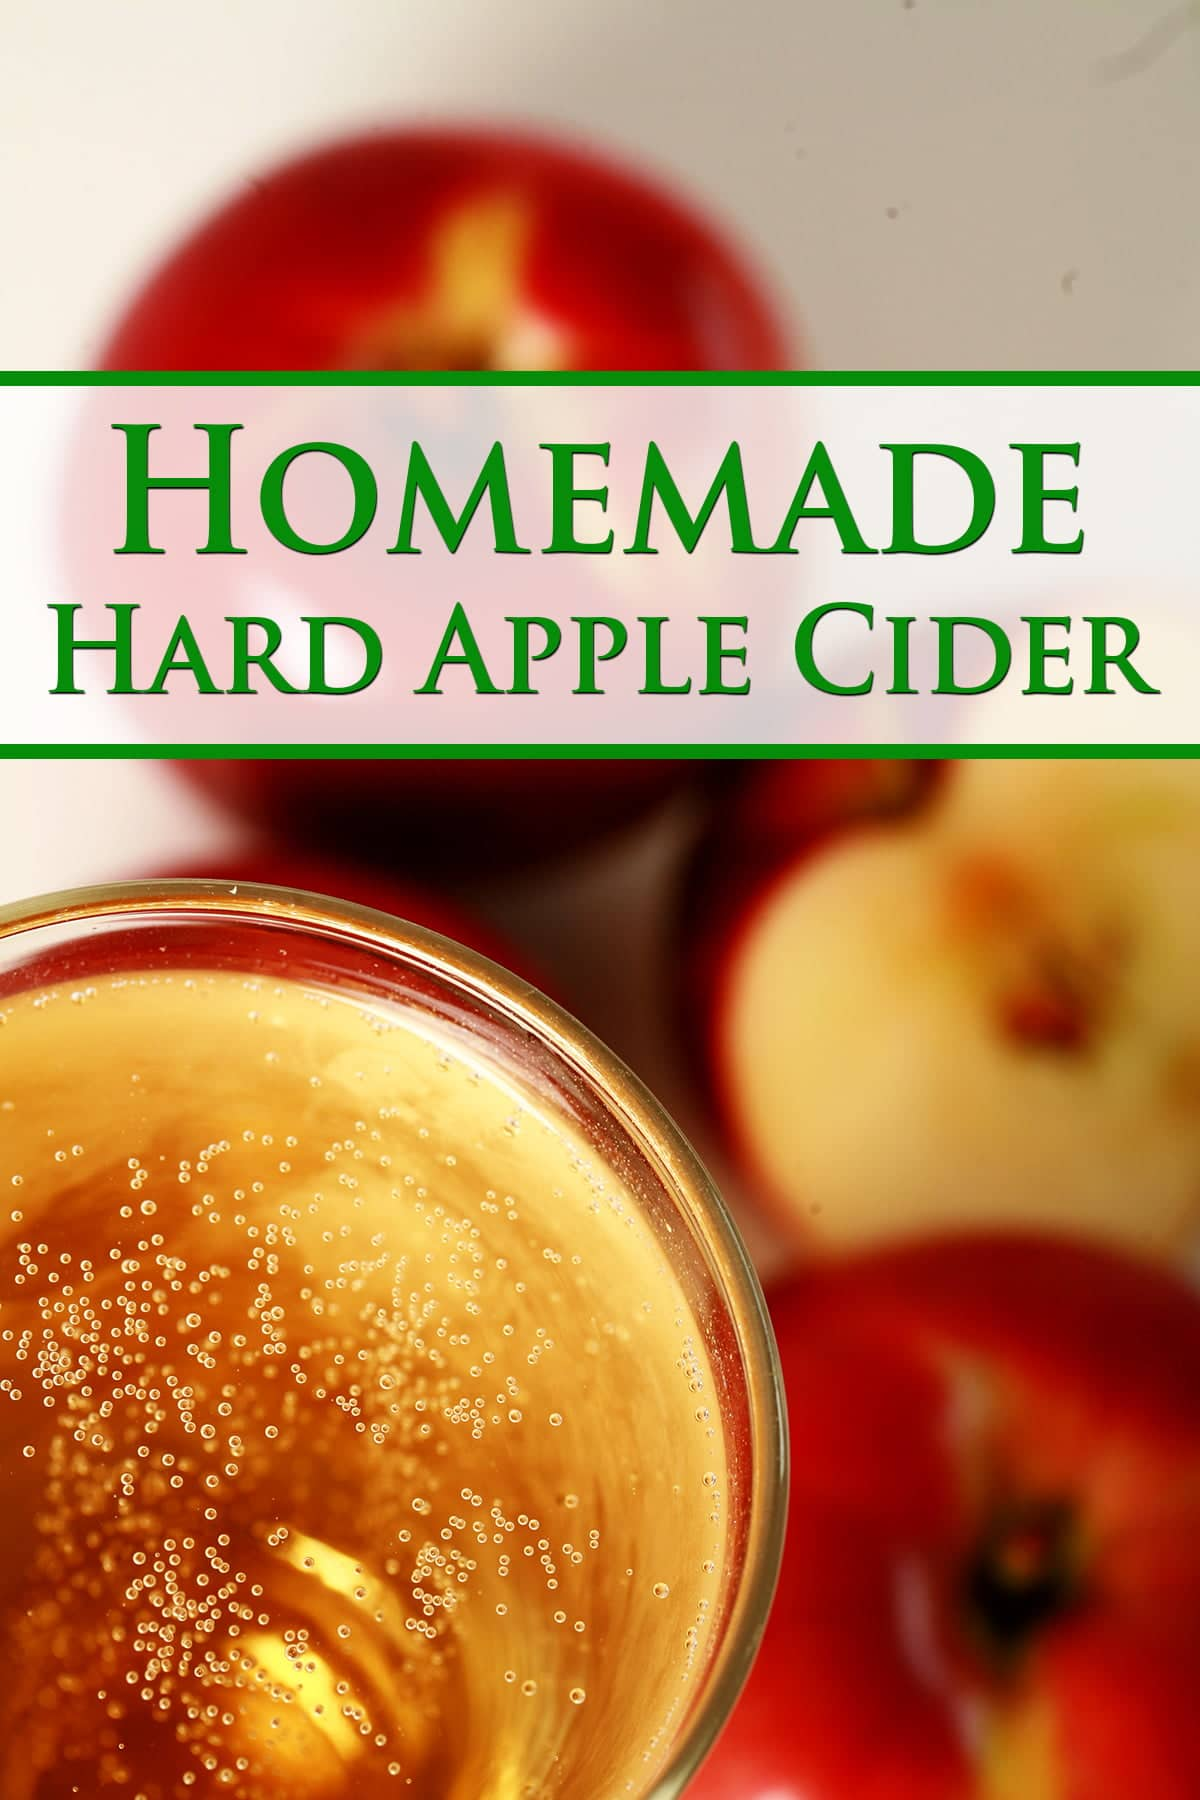 Pinterest image for this Hard Apple Cider recipe.  A close up view of a glass of hard apple cider, with red apples surrounding it.